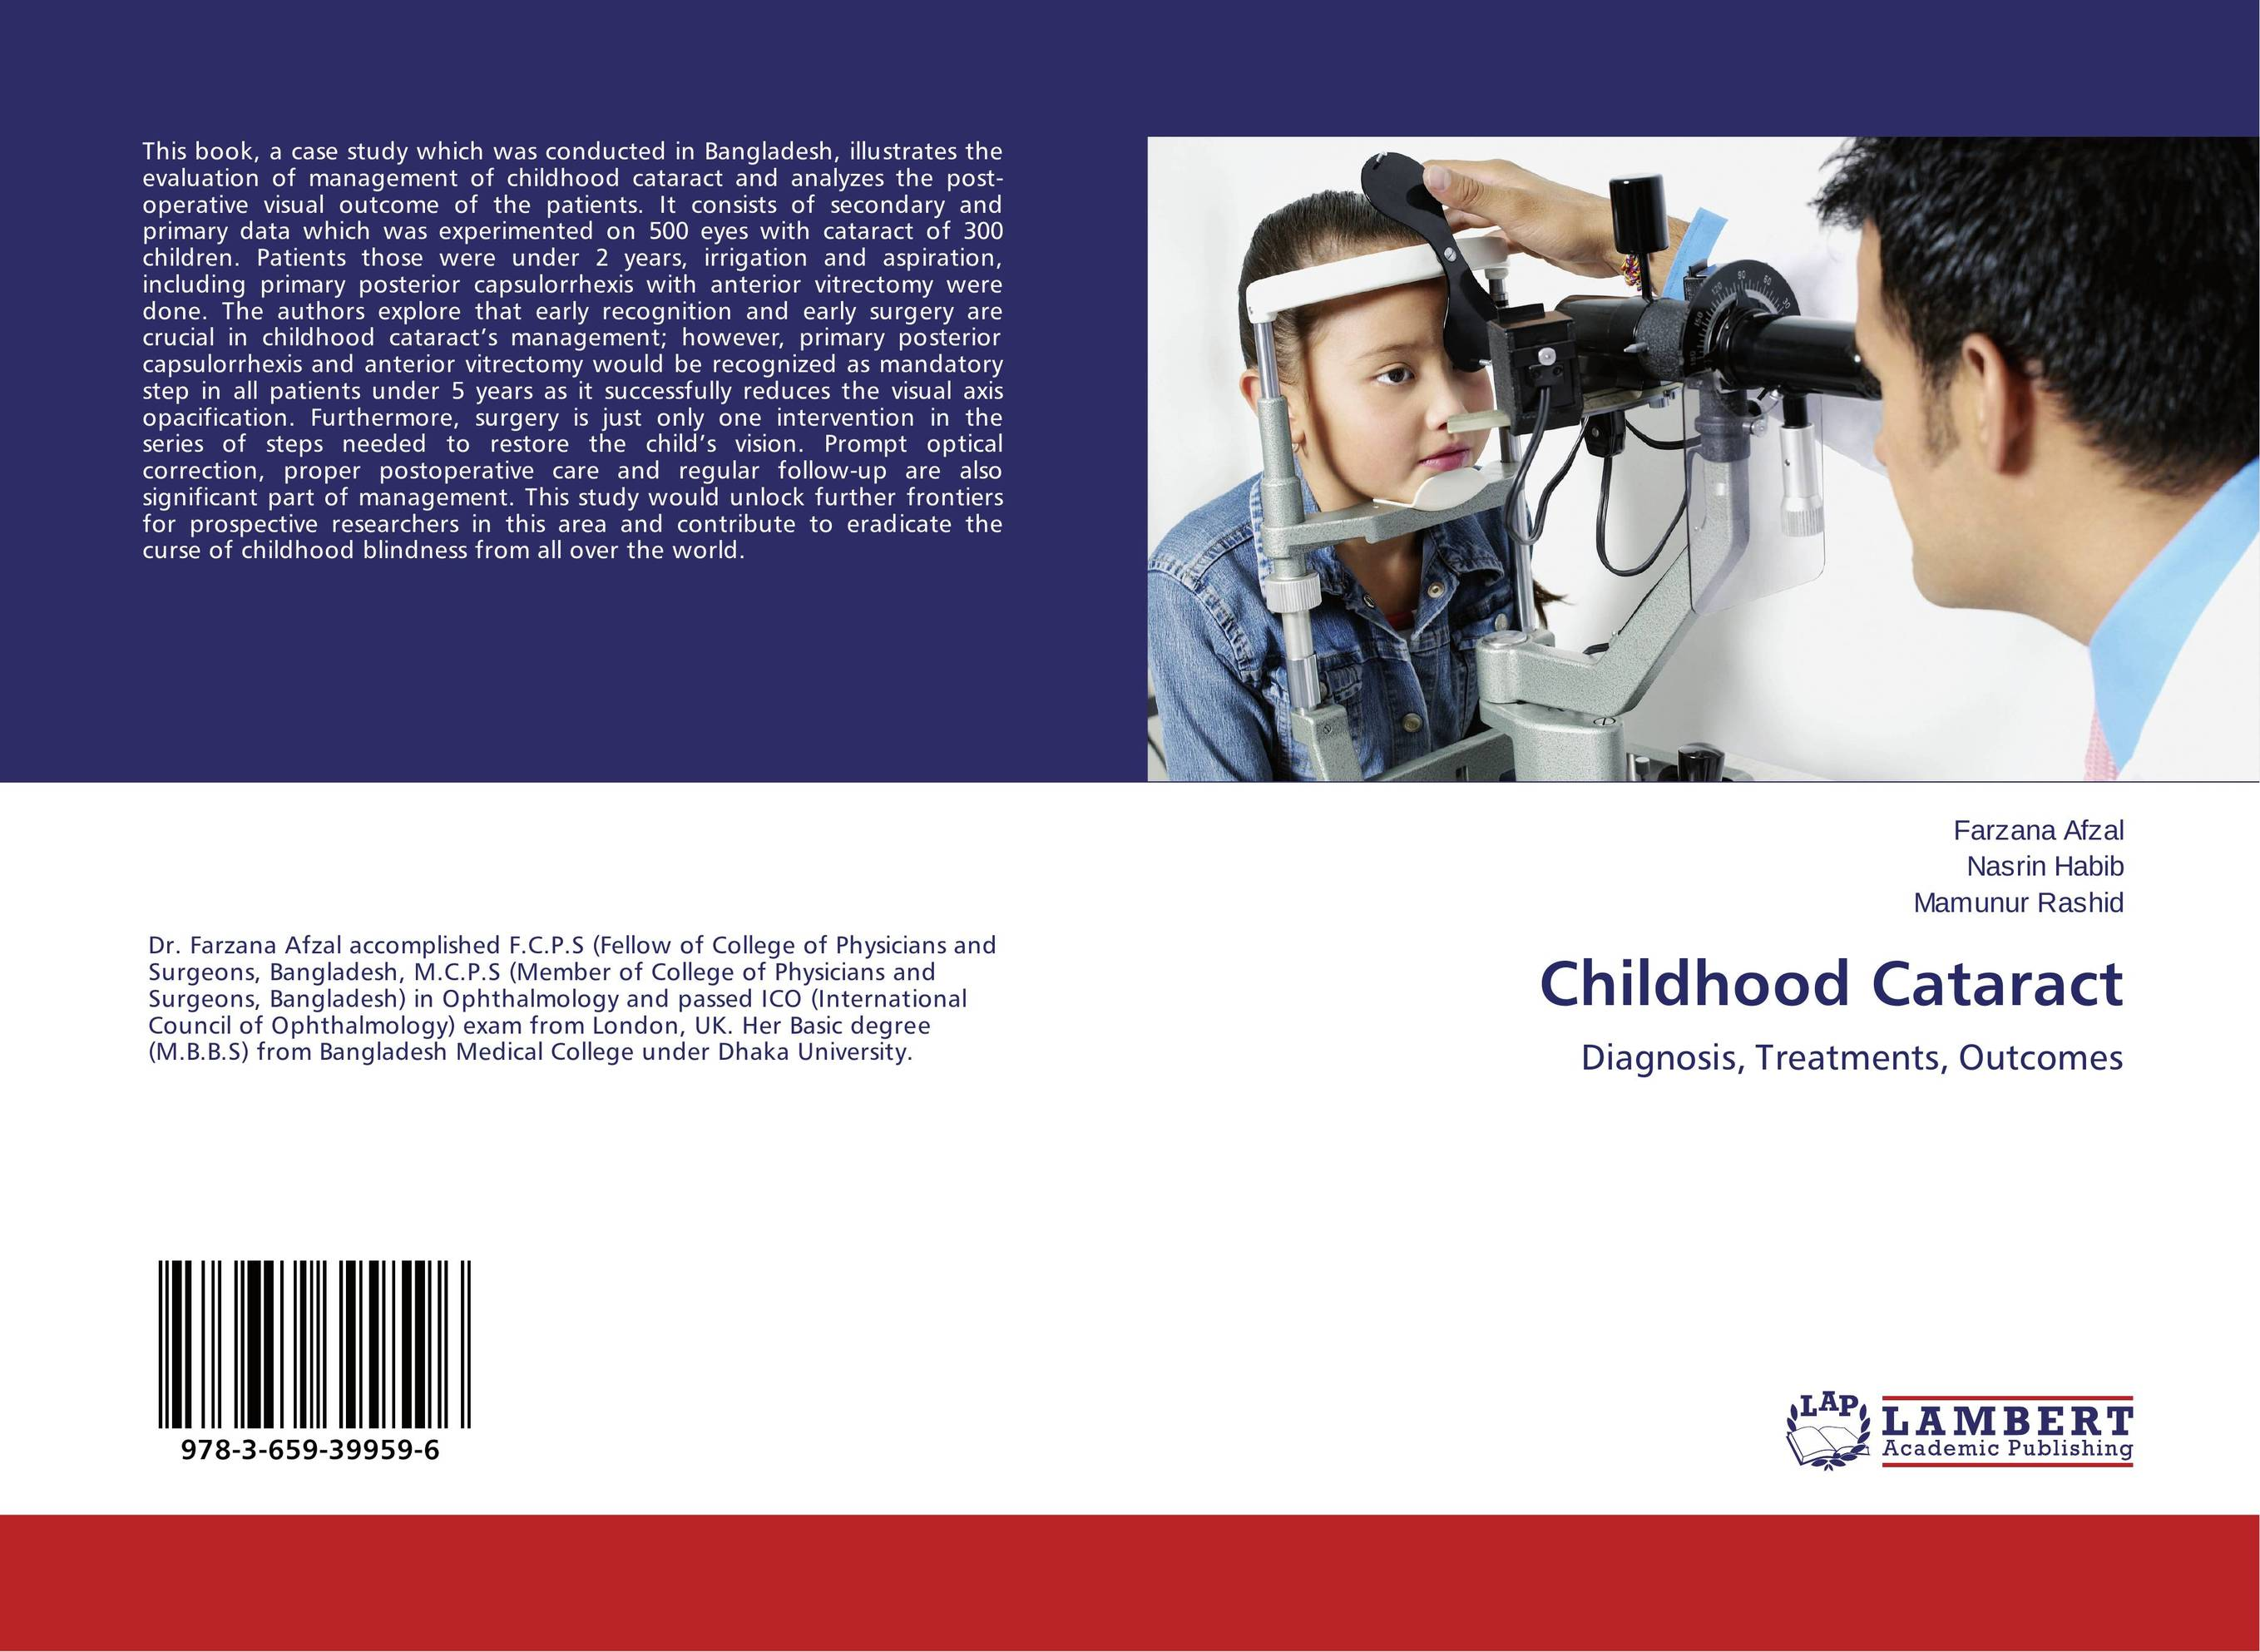 Childhood Cataract